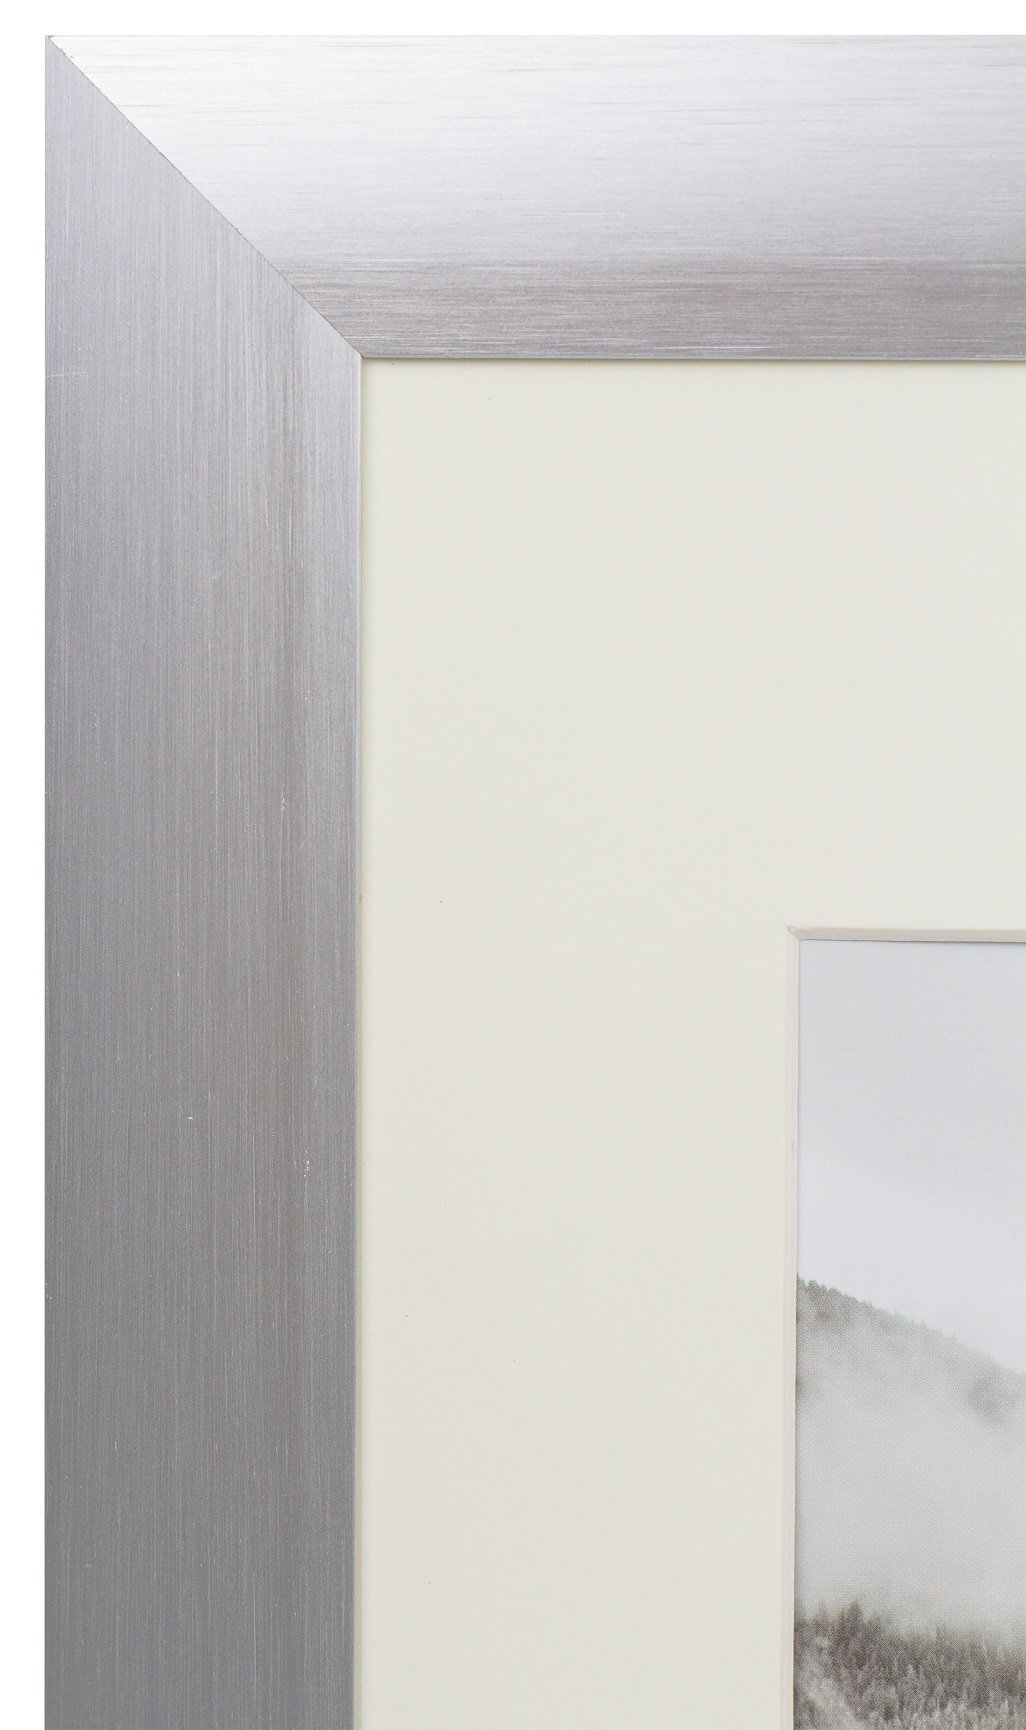 dadce092a91b Golden State Art Satin Silver Color Brushed Aluminum Landscape Or Portrait  Photo Picture Frame With Ivory Color Mat Real Glass (16x20)